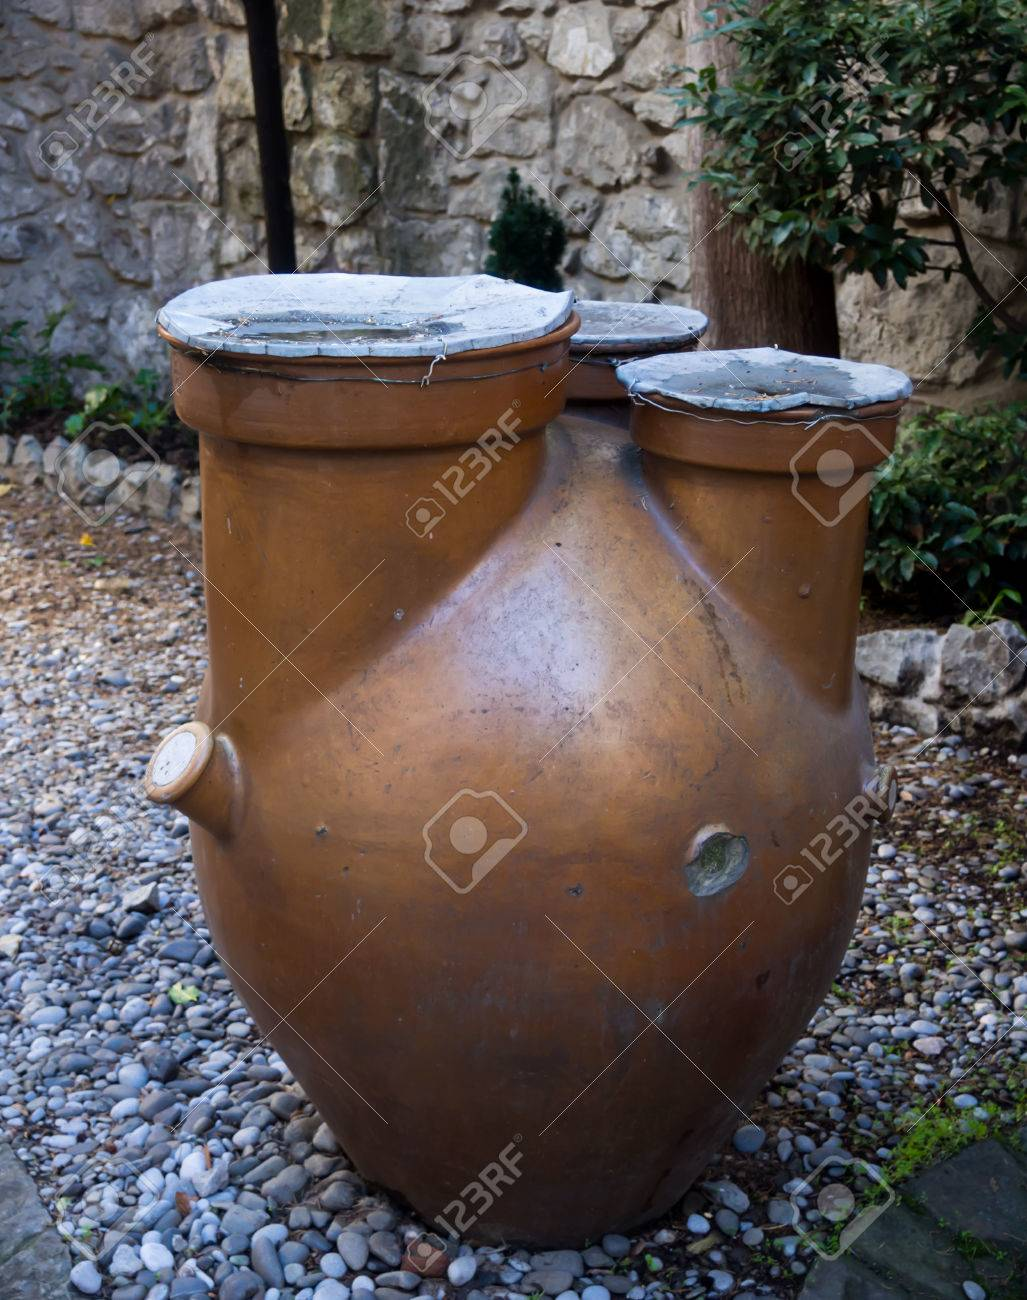 Old Clay Jug For Watering Plants In The Garden Stock Photo Picture